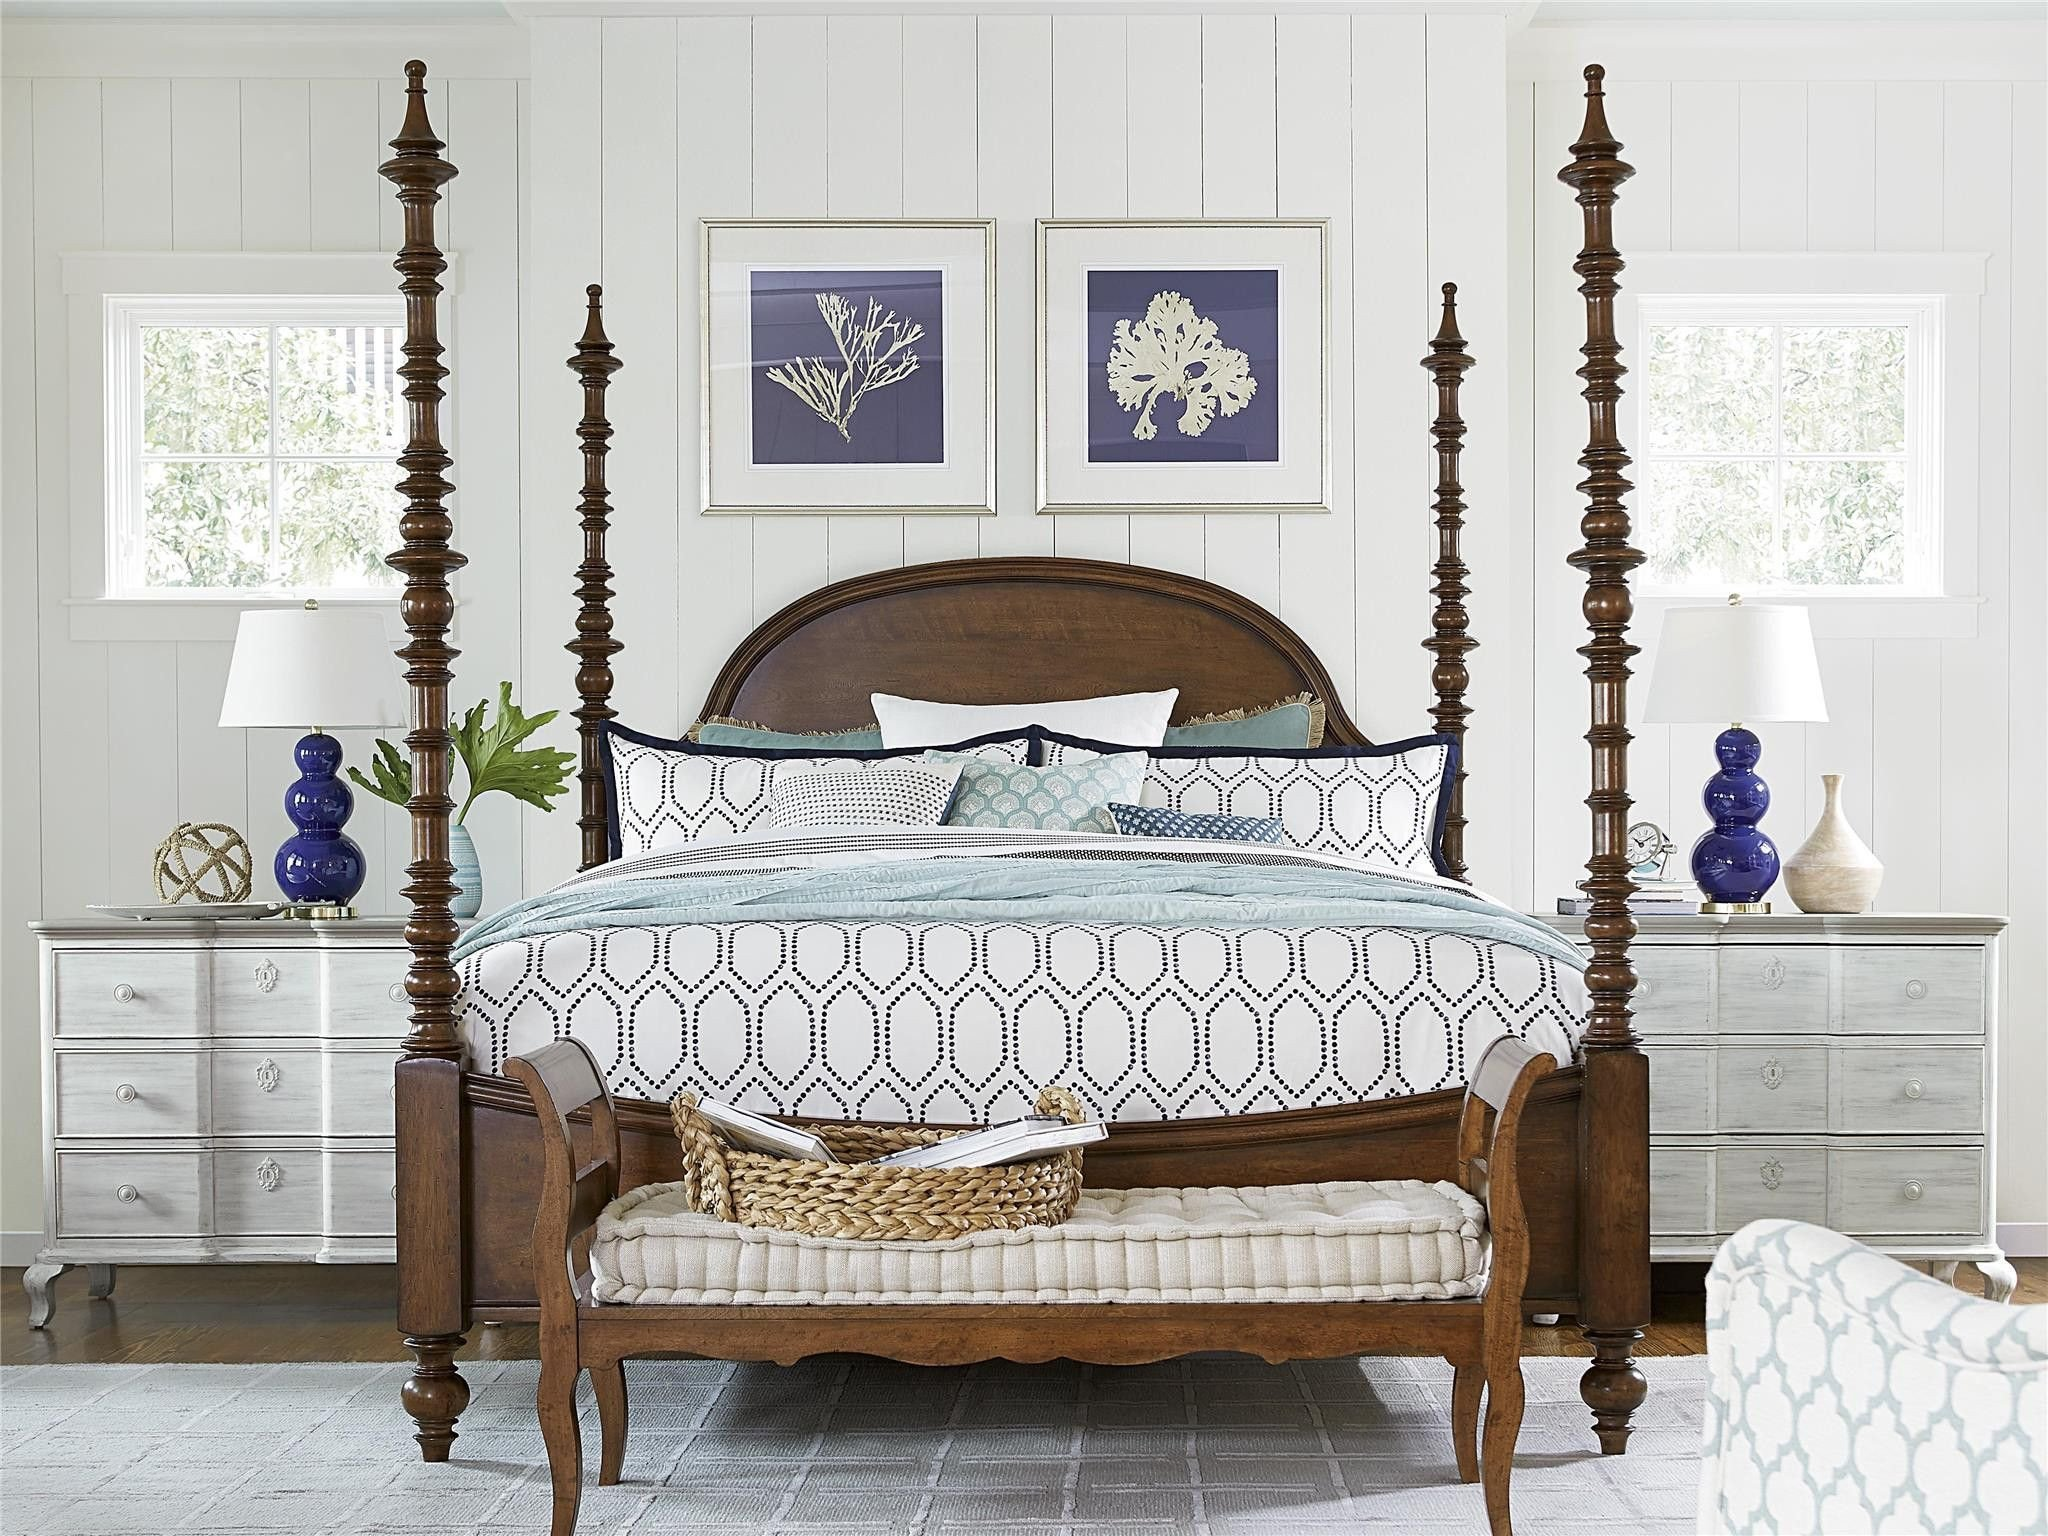 4 Poster Bedroom Set Inspirational the Paula Deen Dogwood Collection by Universal Features A